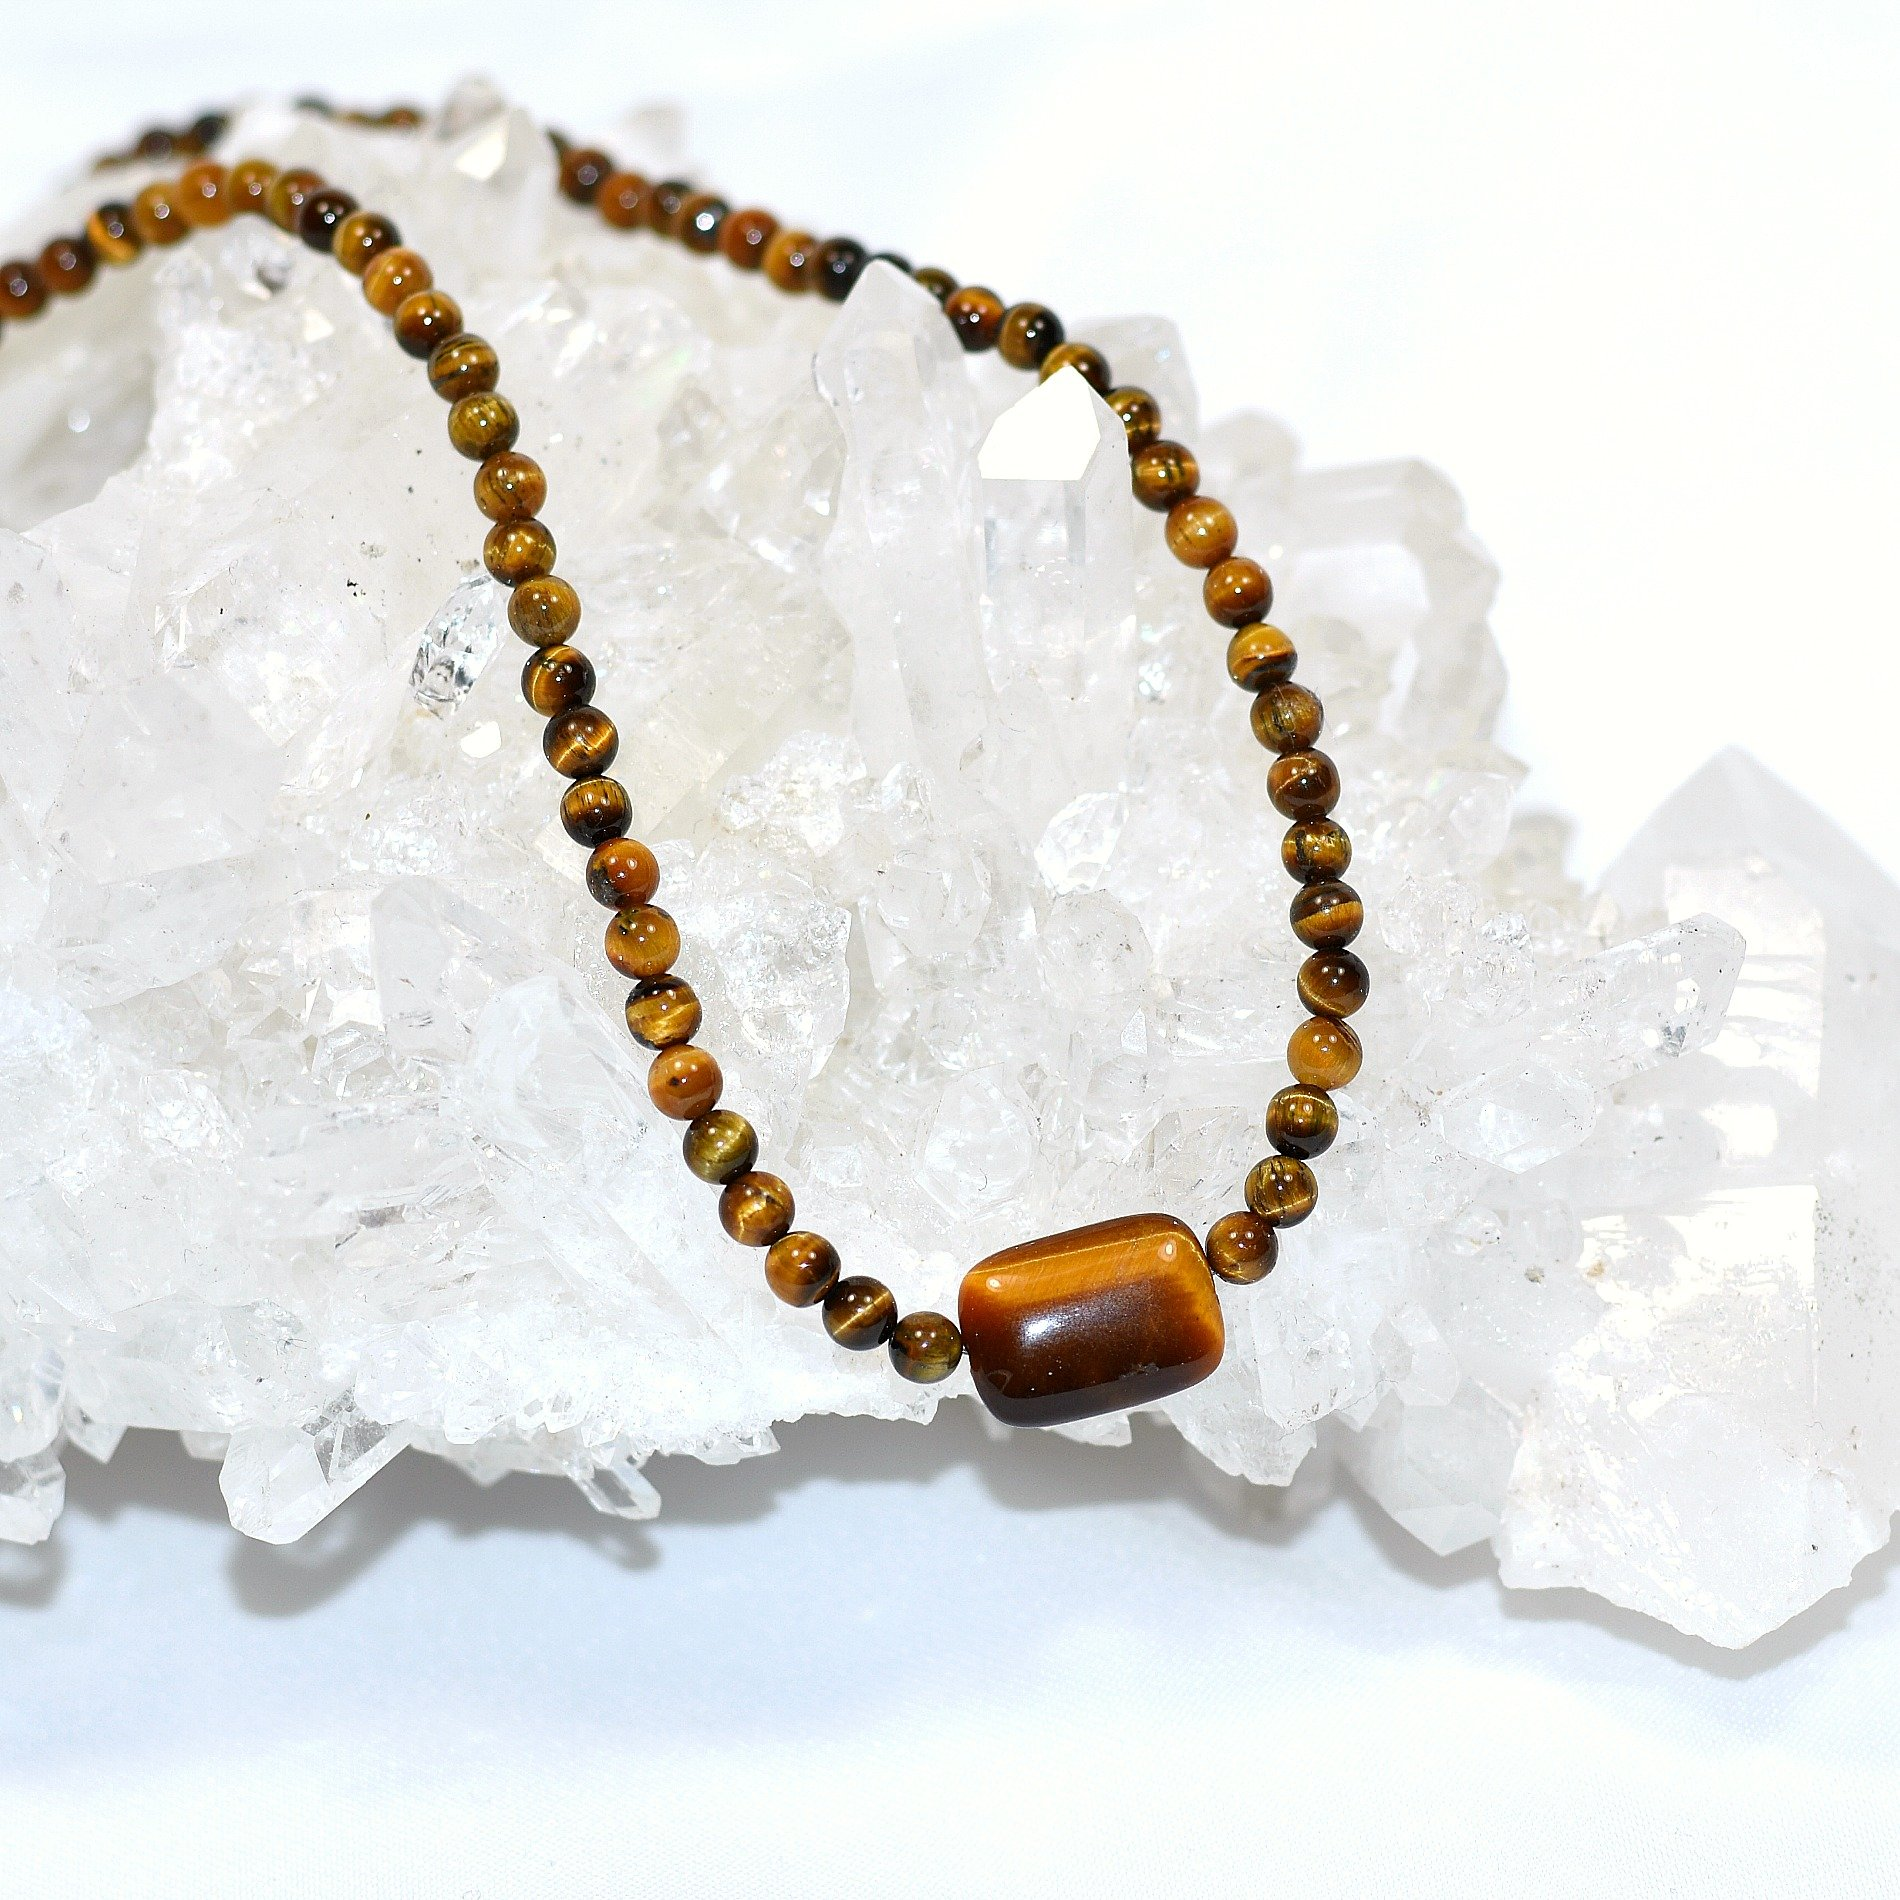 sf epages long en necklace tiger eye ml bead tigers gb